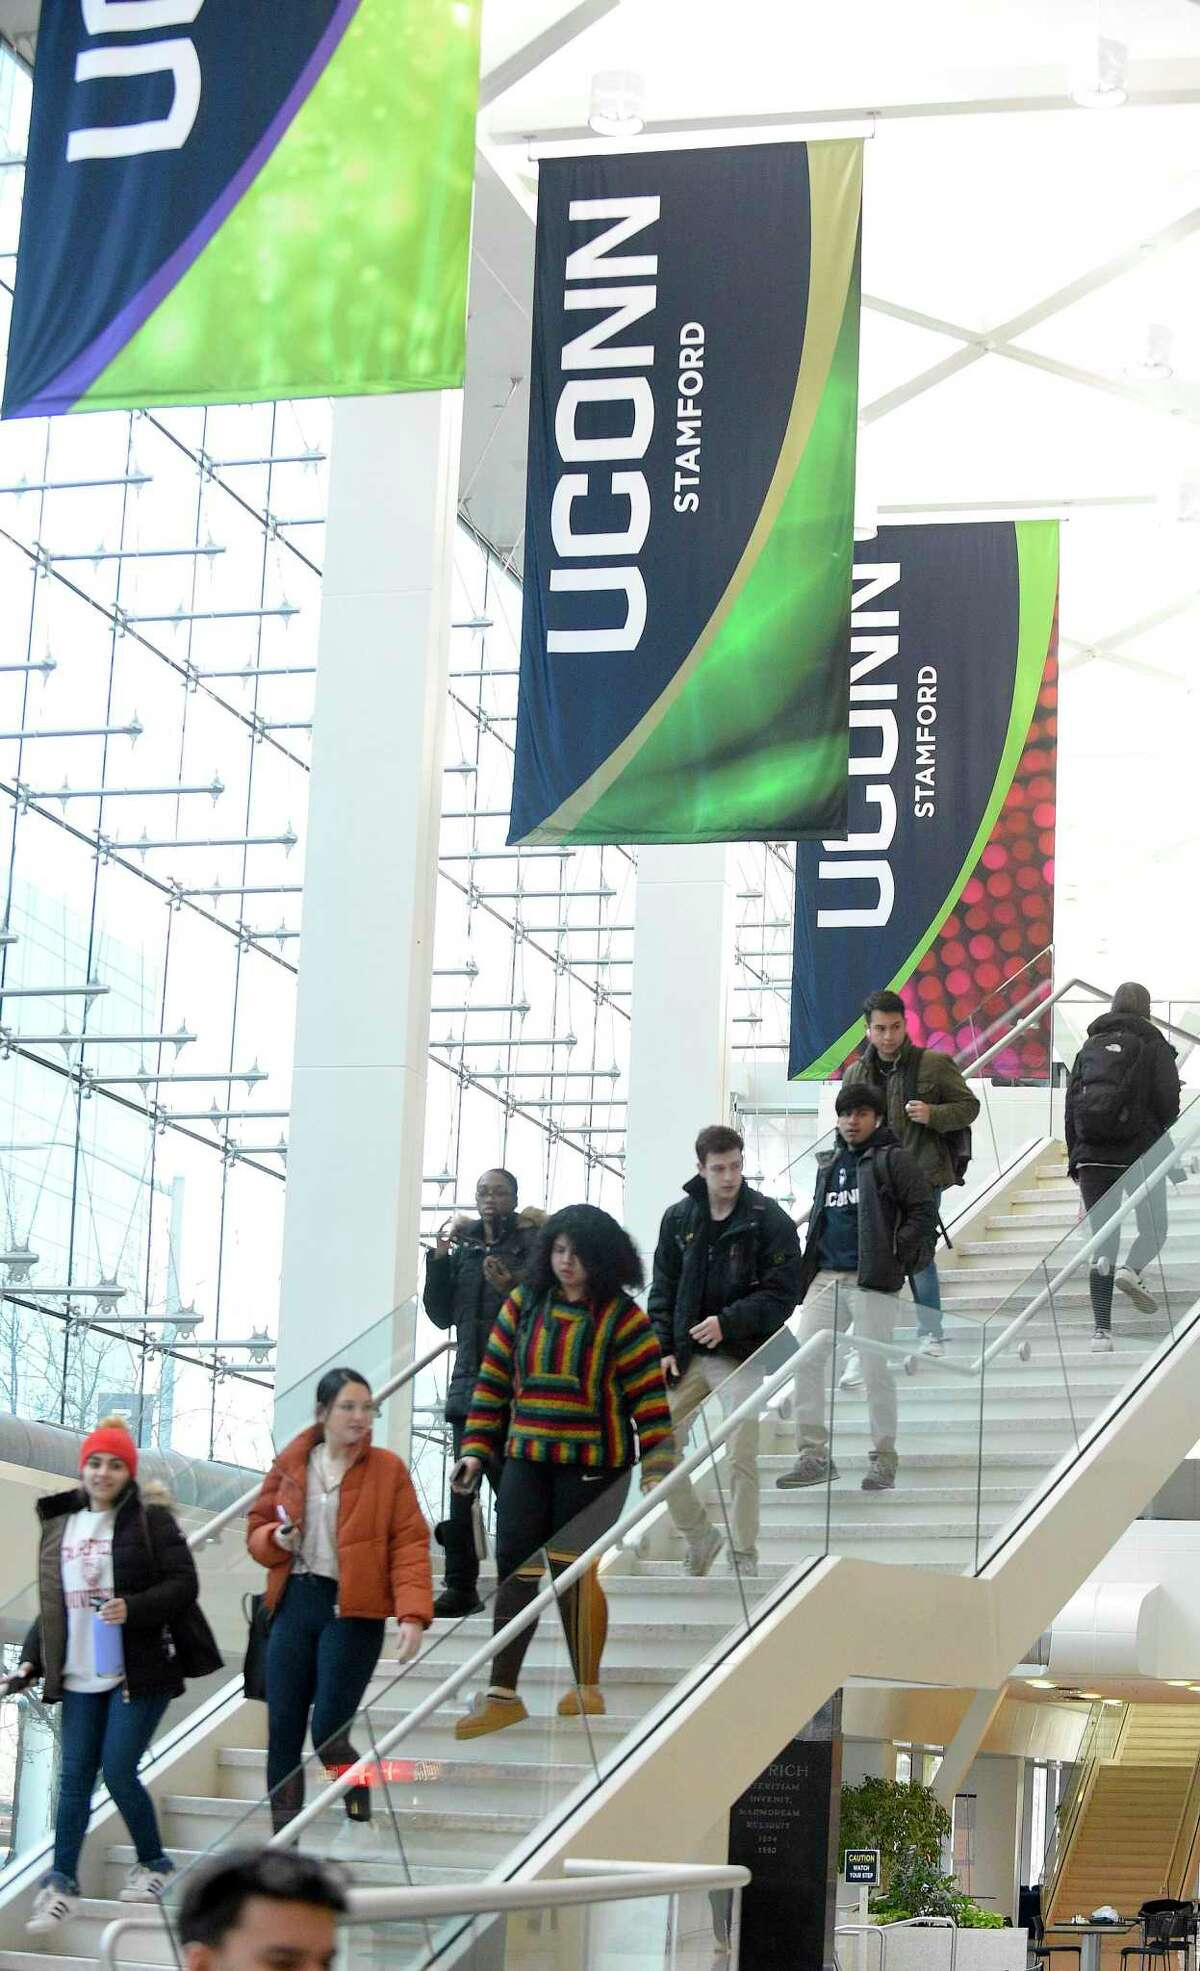 UCONN Stamford students make their way between classes on Jan. 24, 2020 at the campus in Stamford, Connecticut.